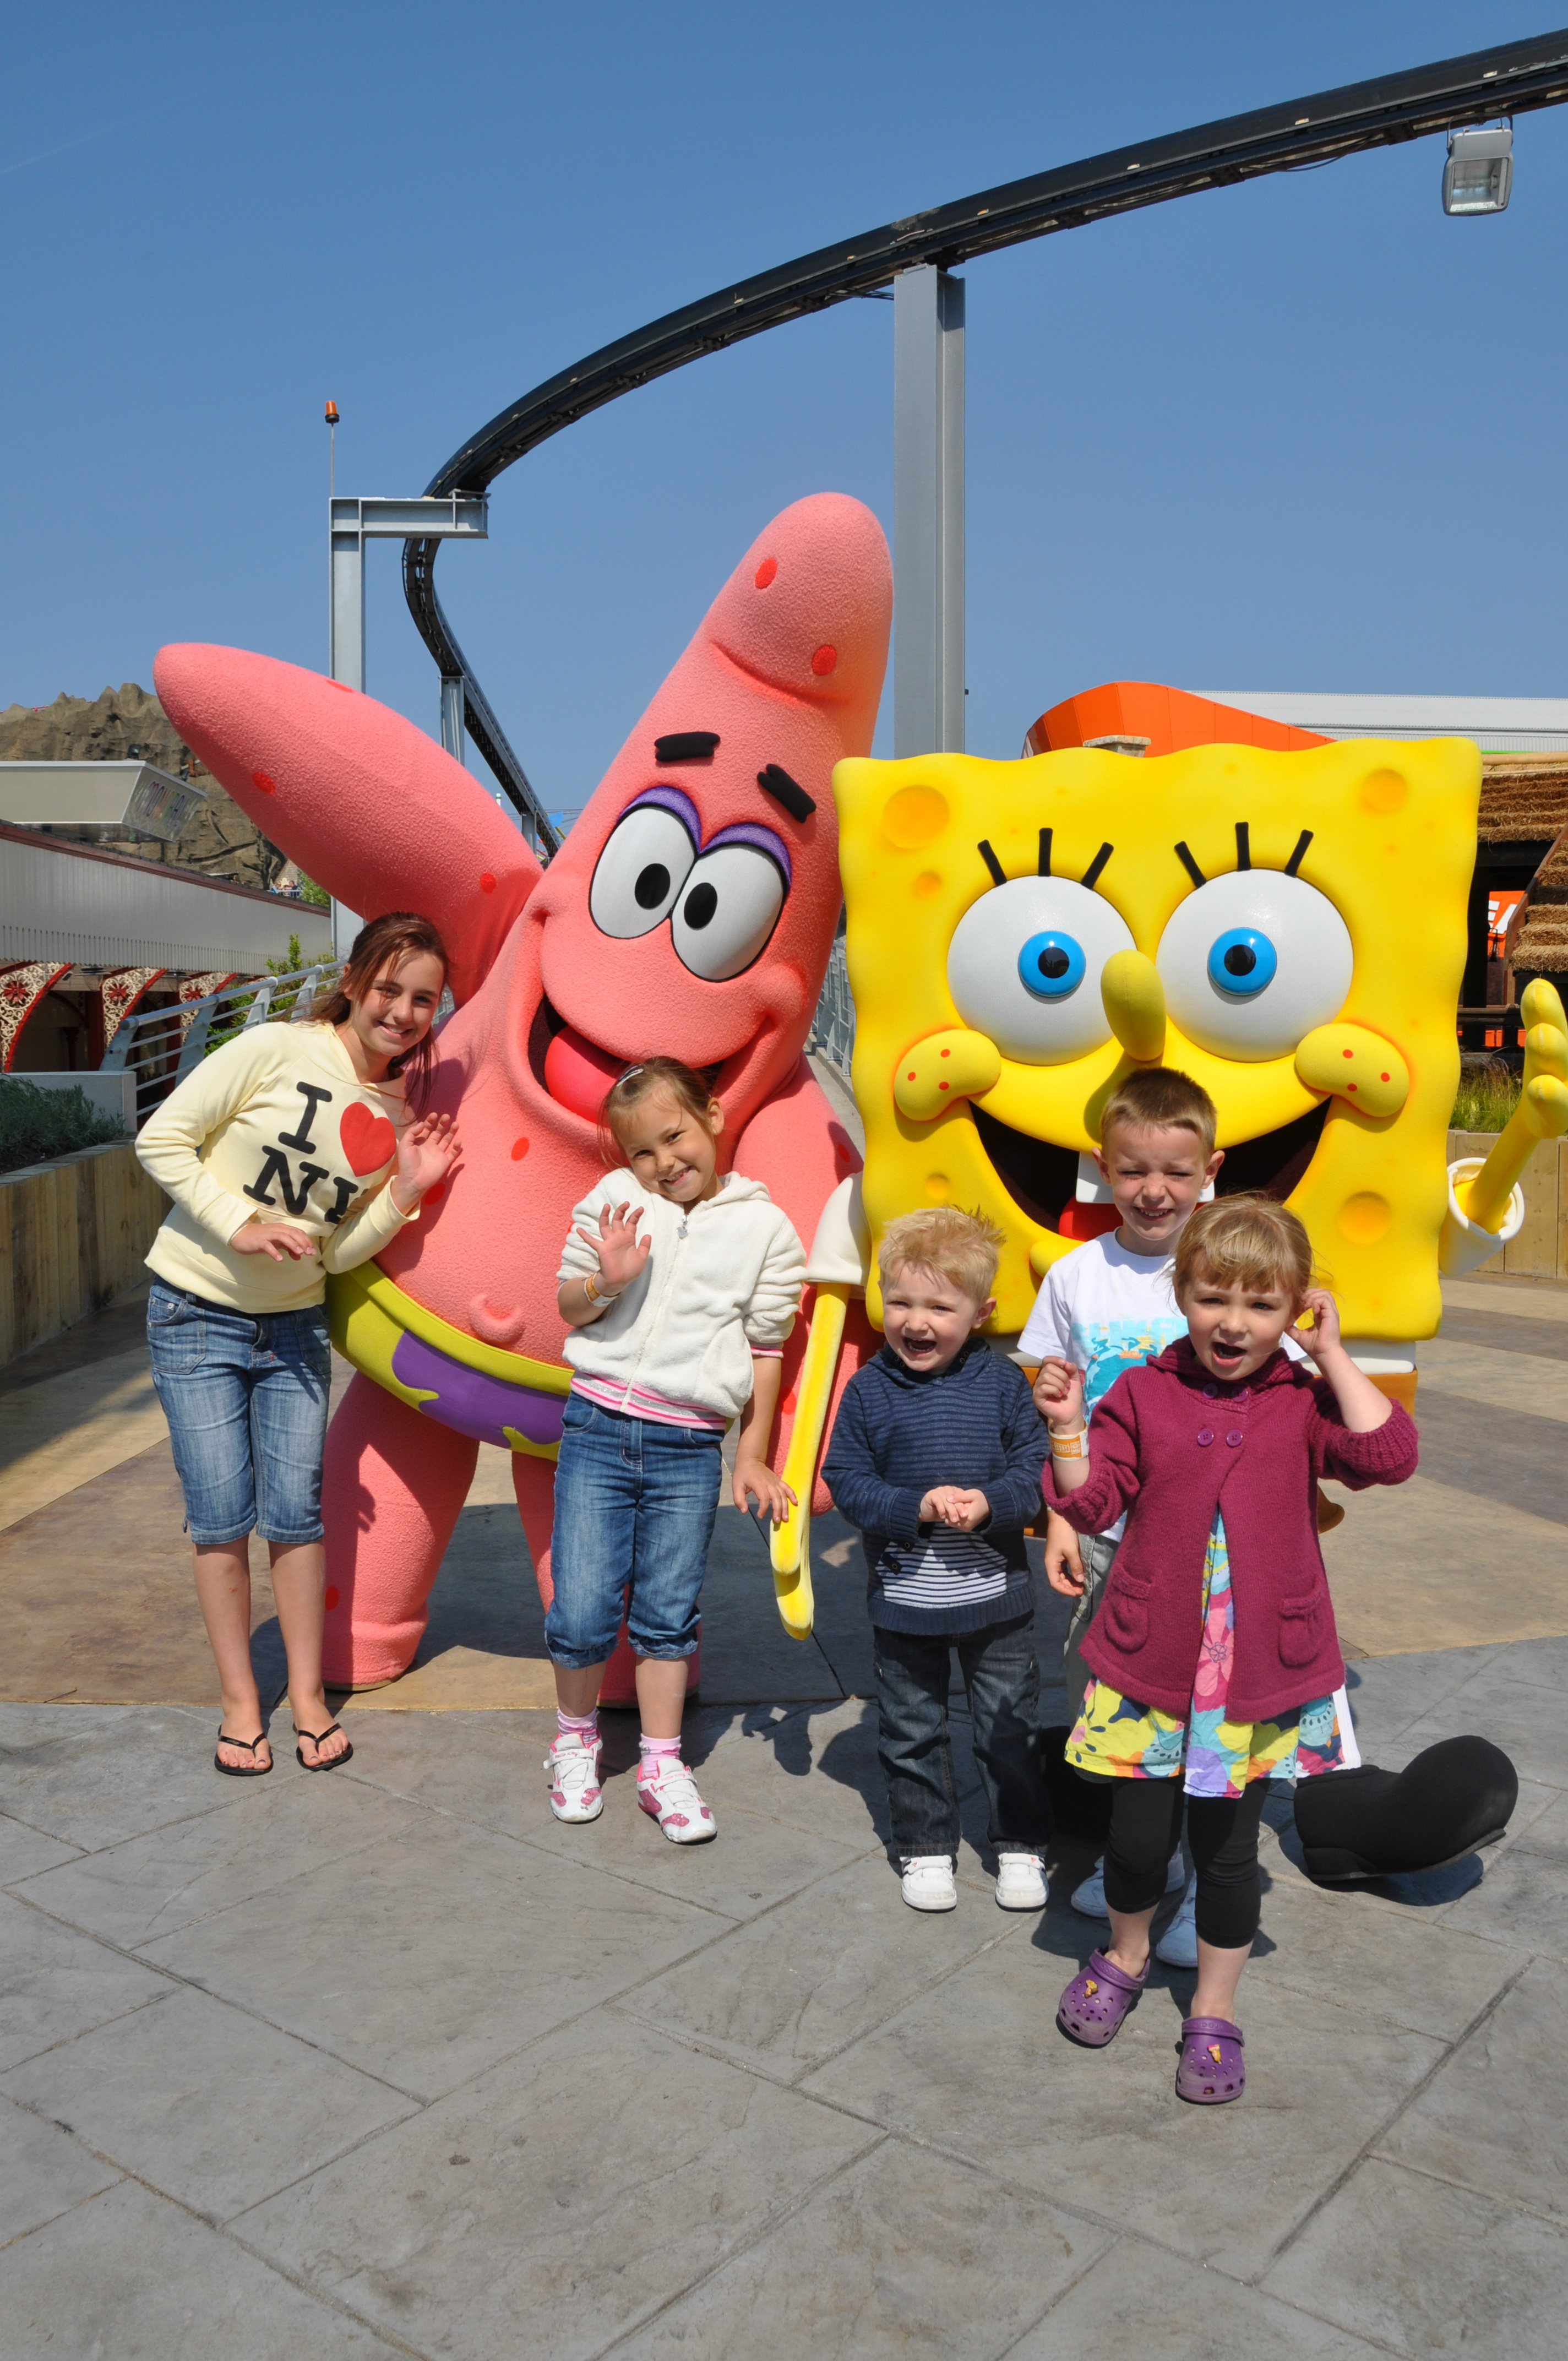 Nickelodeon Land at Pleasure Beach